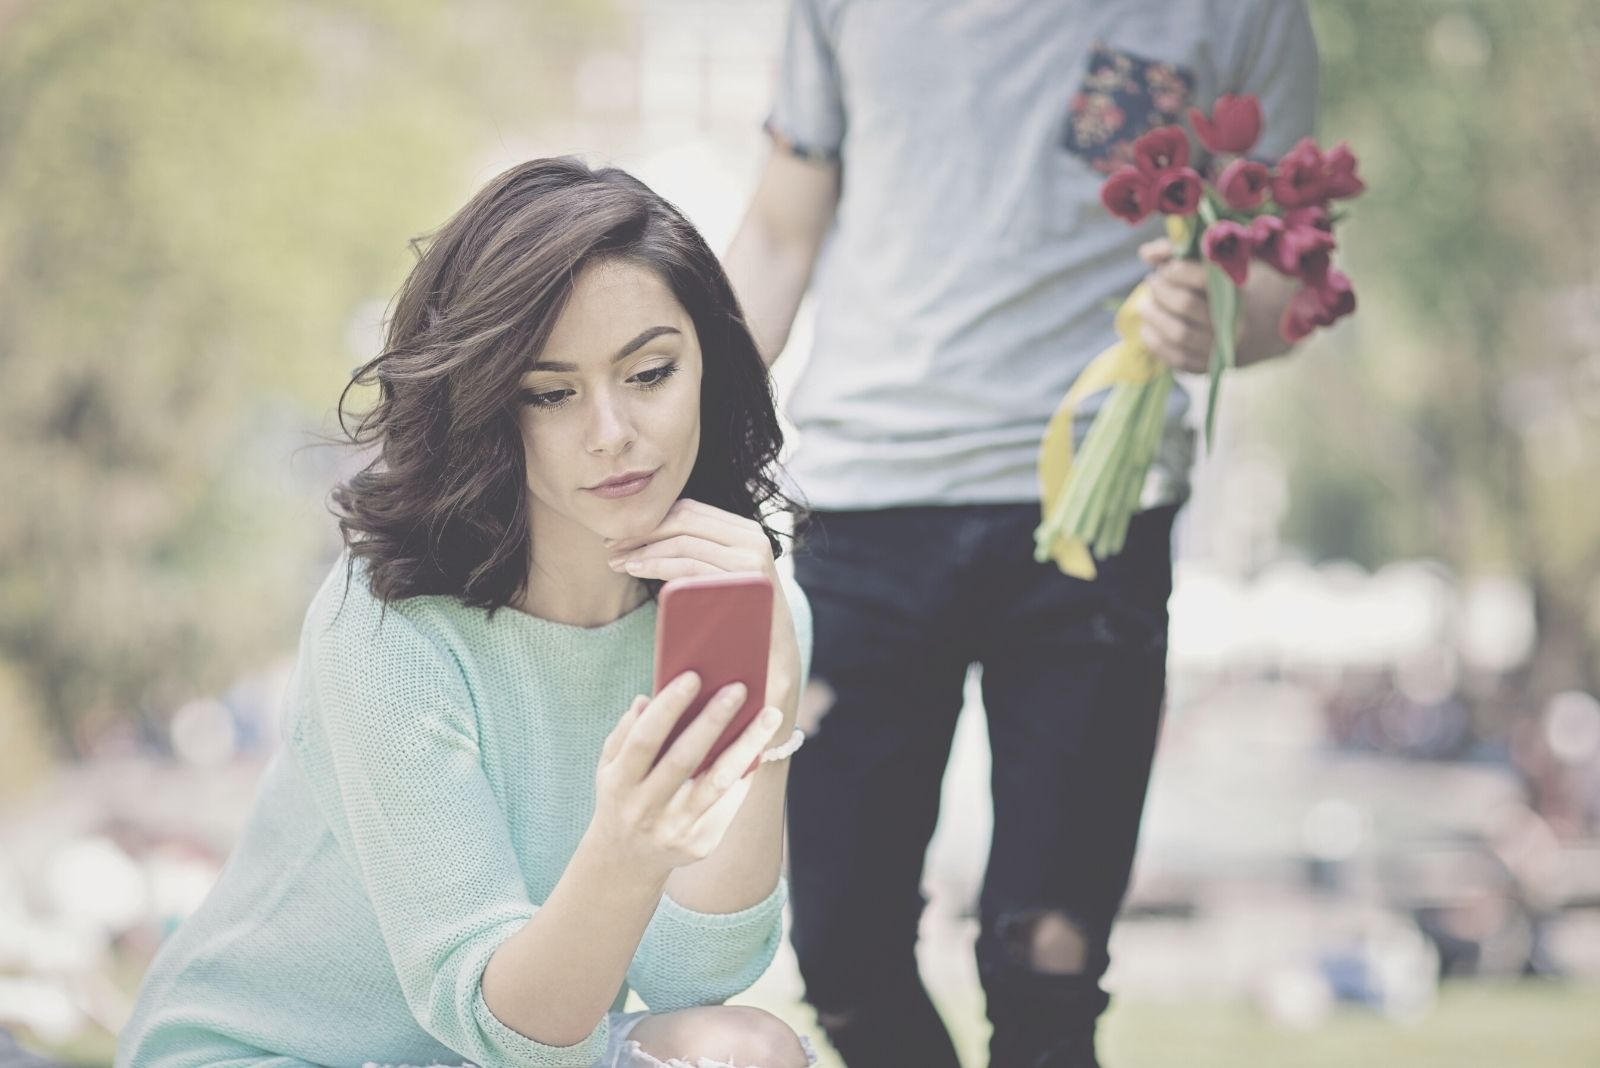 man is bringing flowers to a woman sitting in the park looking at her smartphone